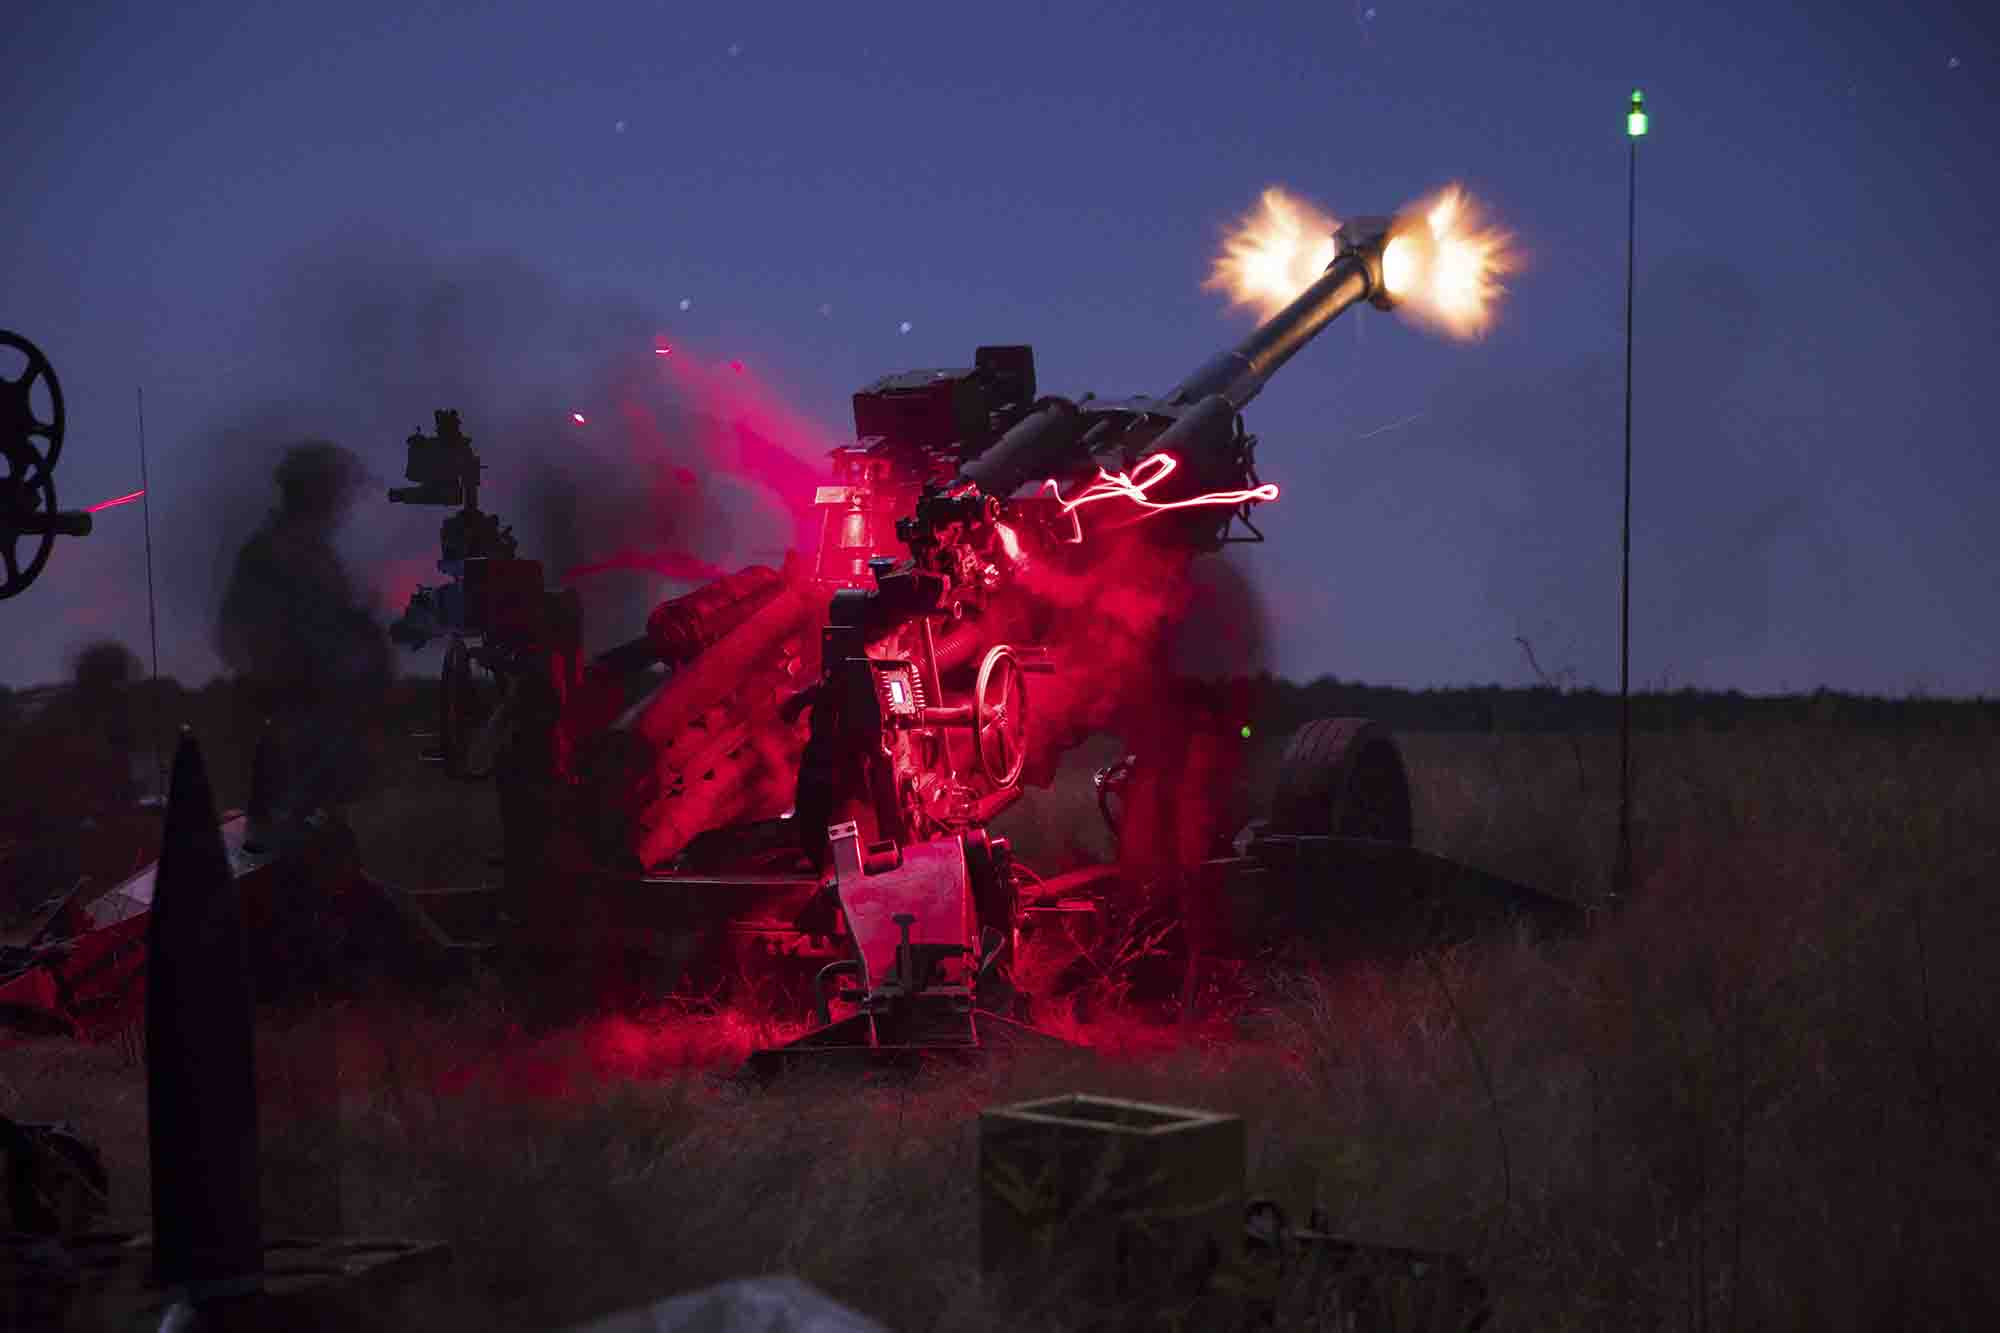 Paratroopers assigned to the 3rd Brigade Combat Team, 82nd Airborne Division fire and prep M777 howitzer rounds on Holland Drop Zone during Exercise Panther Storm II at Fort Bragg, N.C., Nov. 4, 2020. (Pvt. Vincent A Levelev/Army)